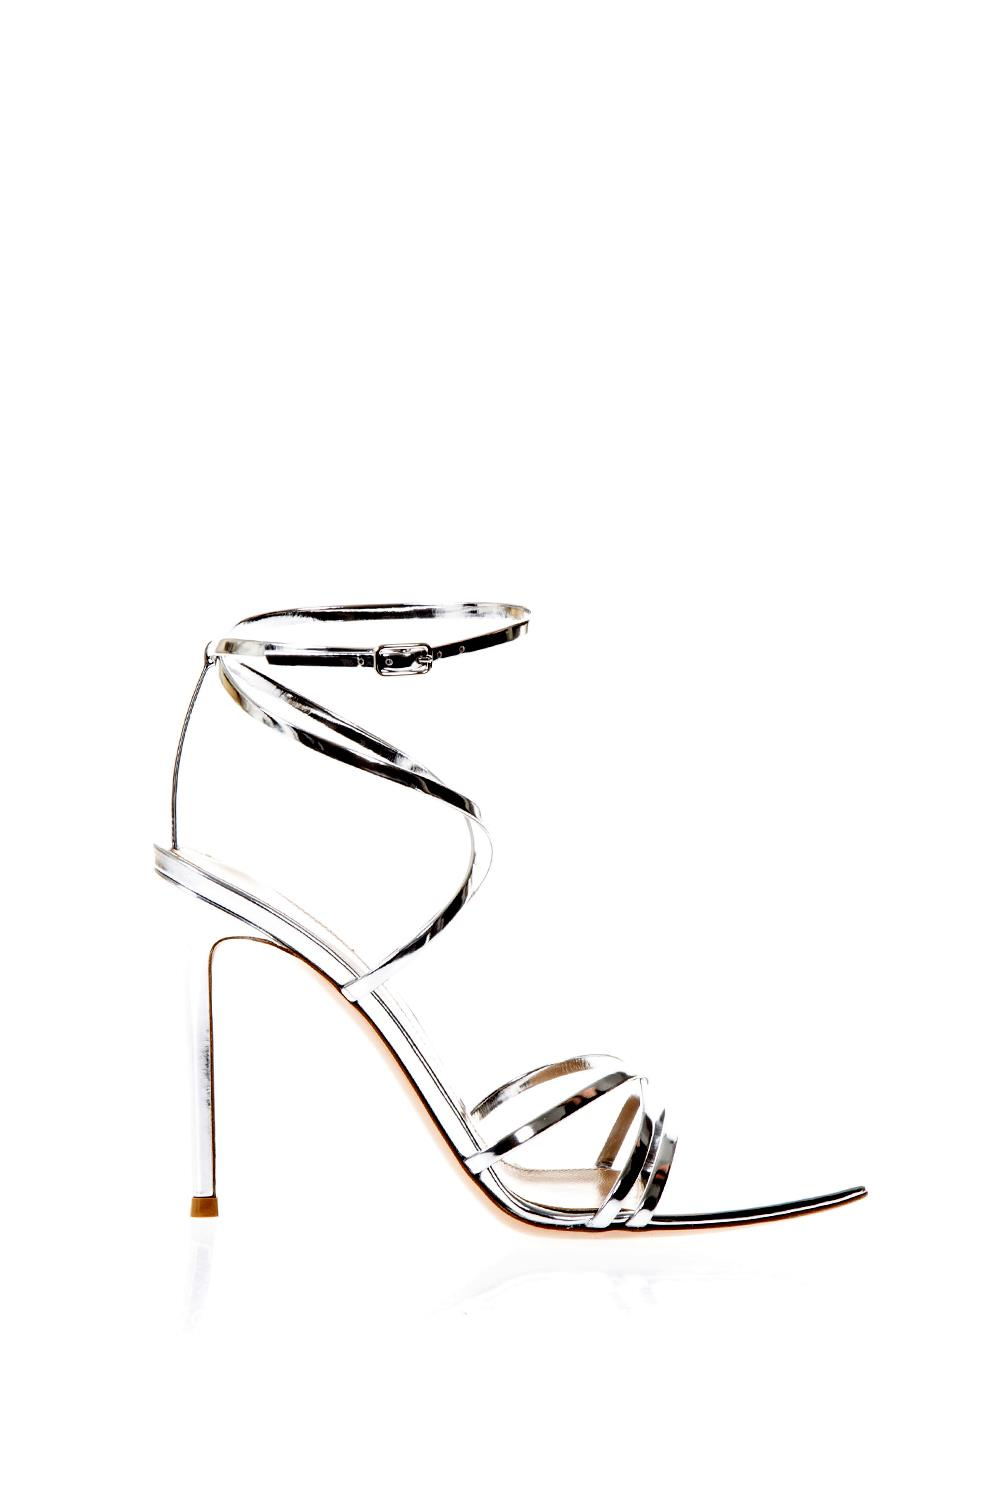 176ce50ff7d METARGE SILVER SANDALS IN LEATHER SS 2018 - GIANVITO ROSSI - Boutique  Galiano